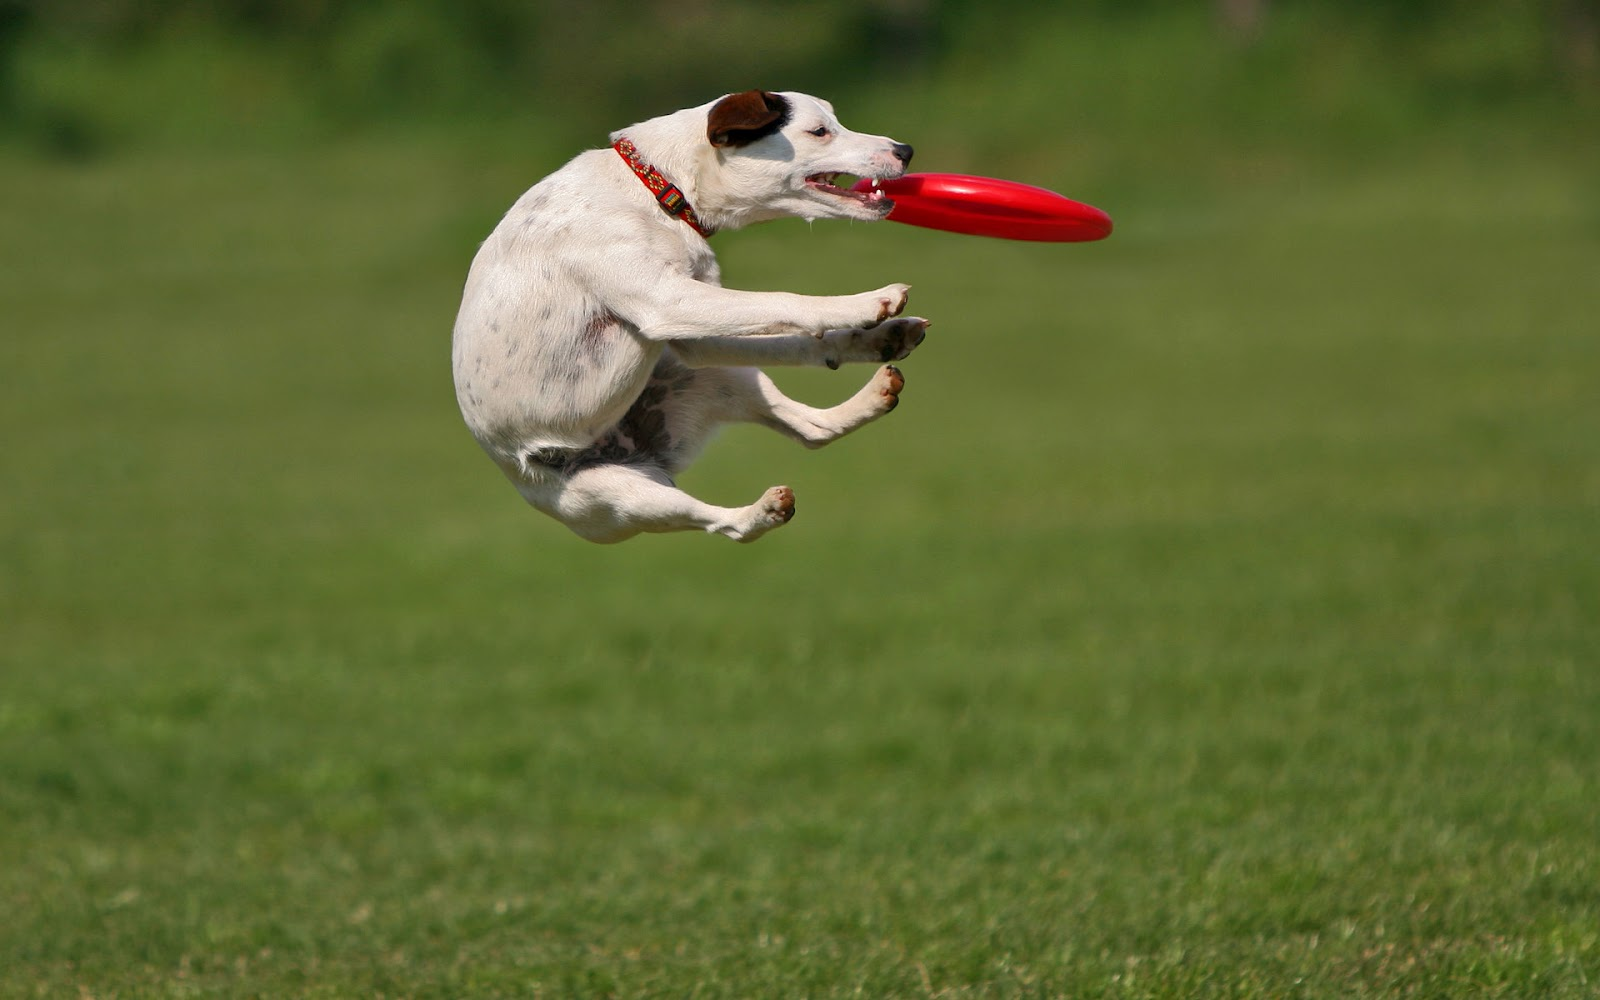 Dog Playing And Catching A Frisbee Hd Animal Wallpaper Dogs Fordog